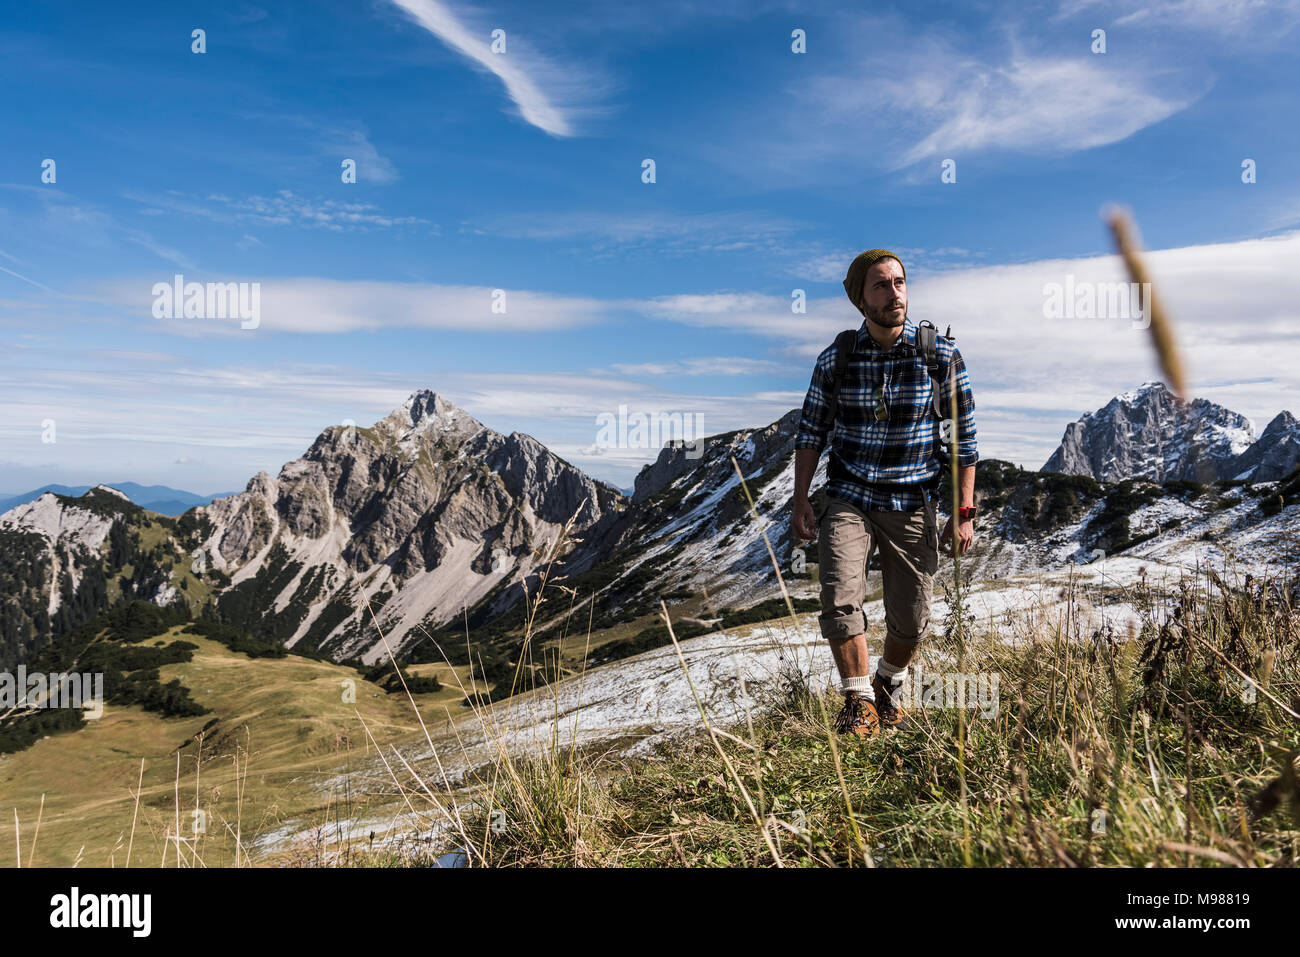 Austria, Tyrol, young man hiking in the mountains - Stock Image